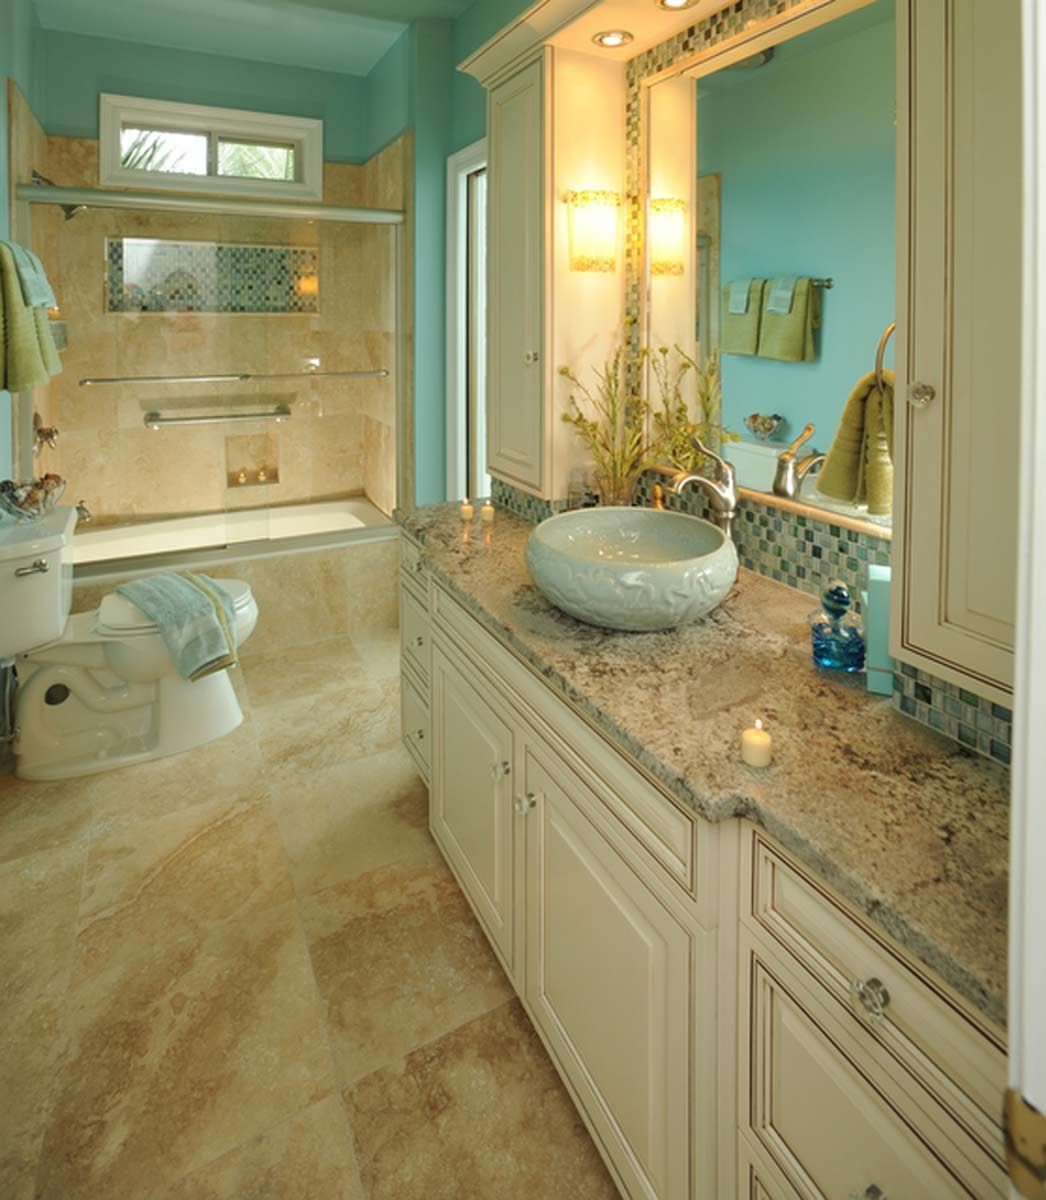 Bathrooms On Pinterest: Best 25+ Blue Bathrooms Ideas On Pinterest